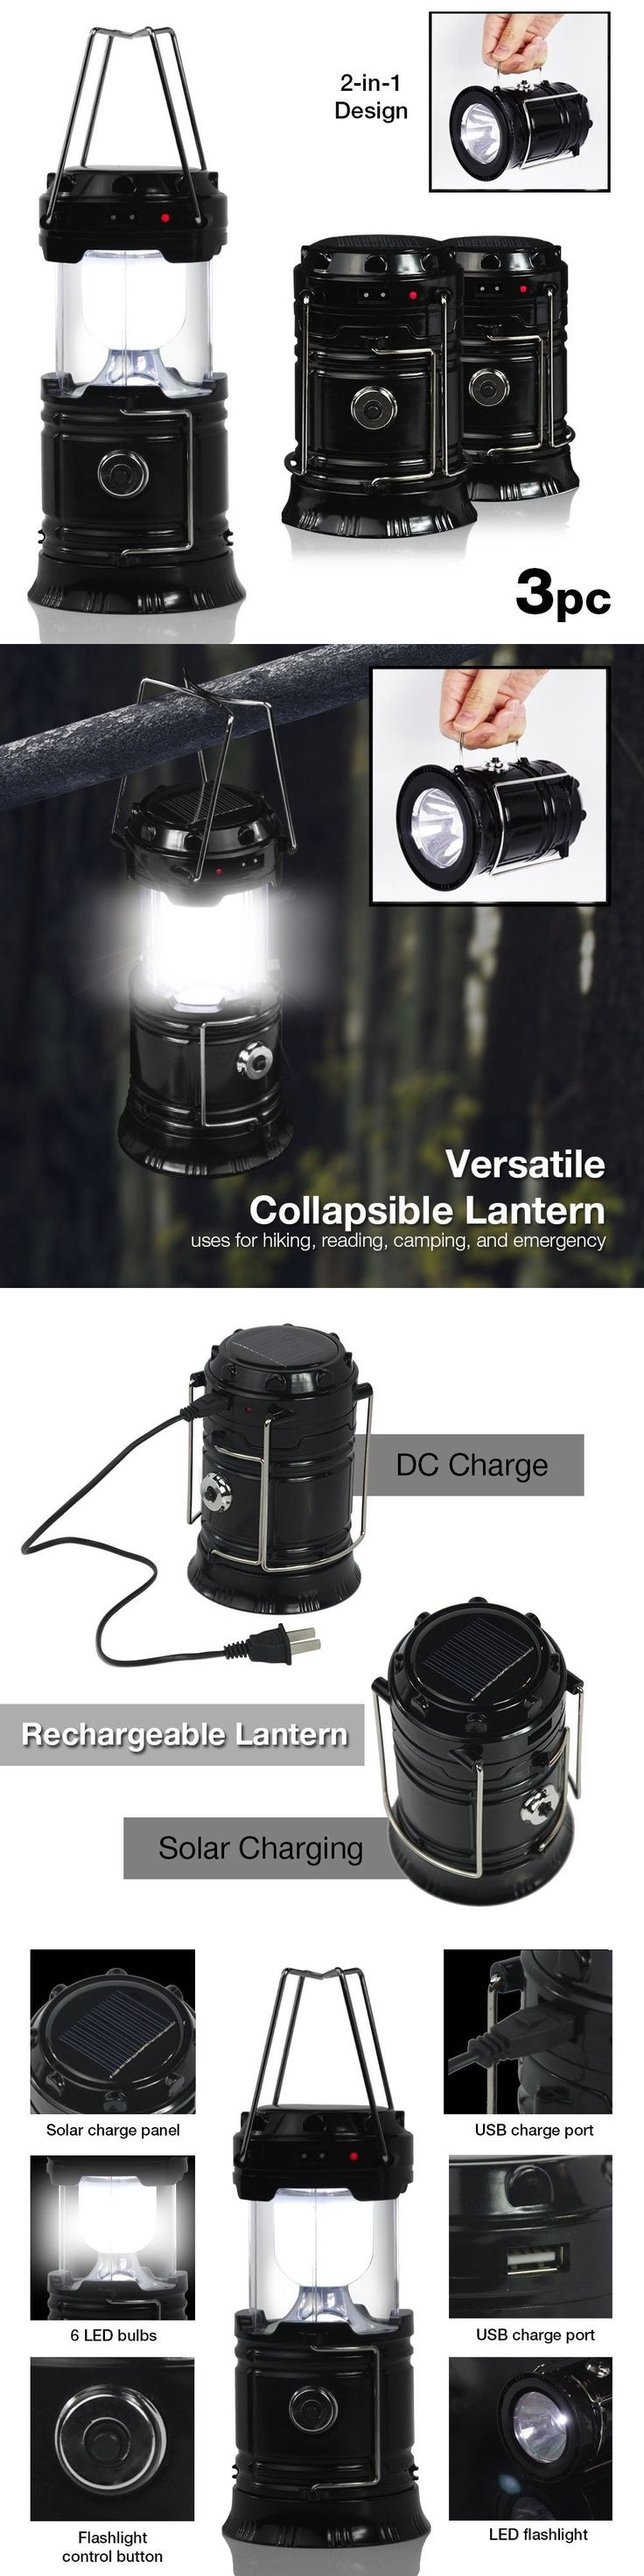 Lanterns 168867: Led Camping Lantern Portable Collapsible Hiking Night Light Lamp Outdoor Hiking -> BUY IT NOW ONLY: $40.75 on eBay!